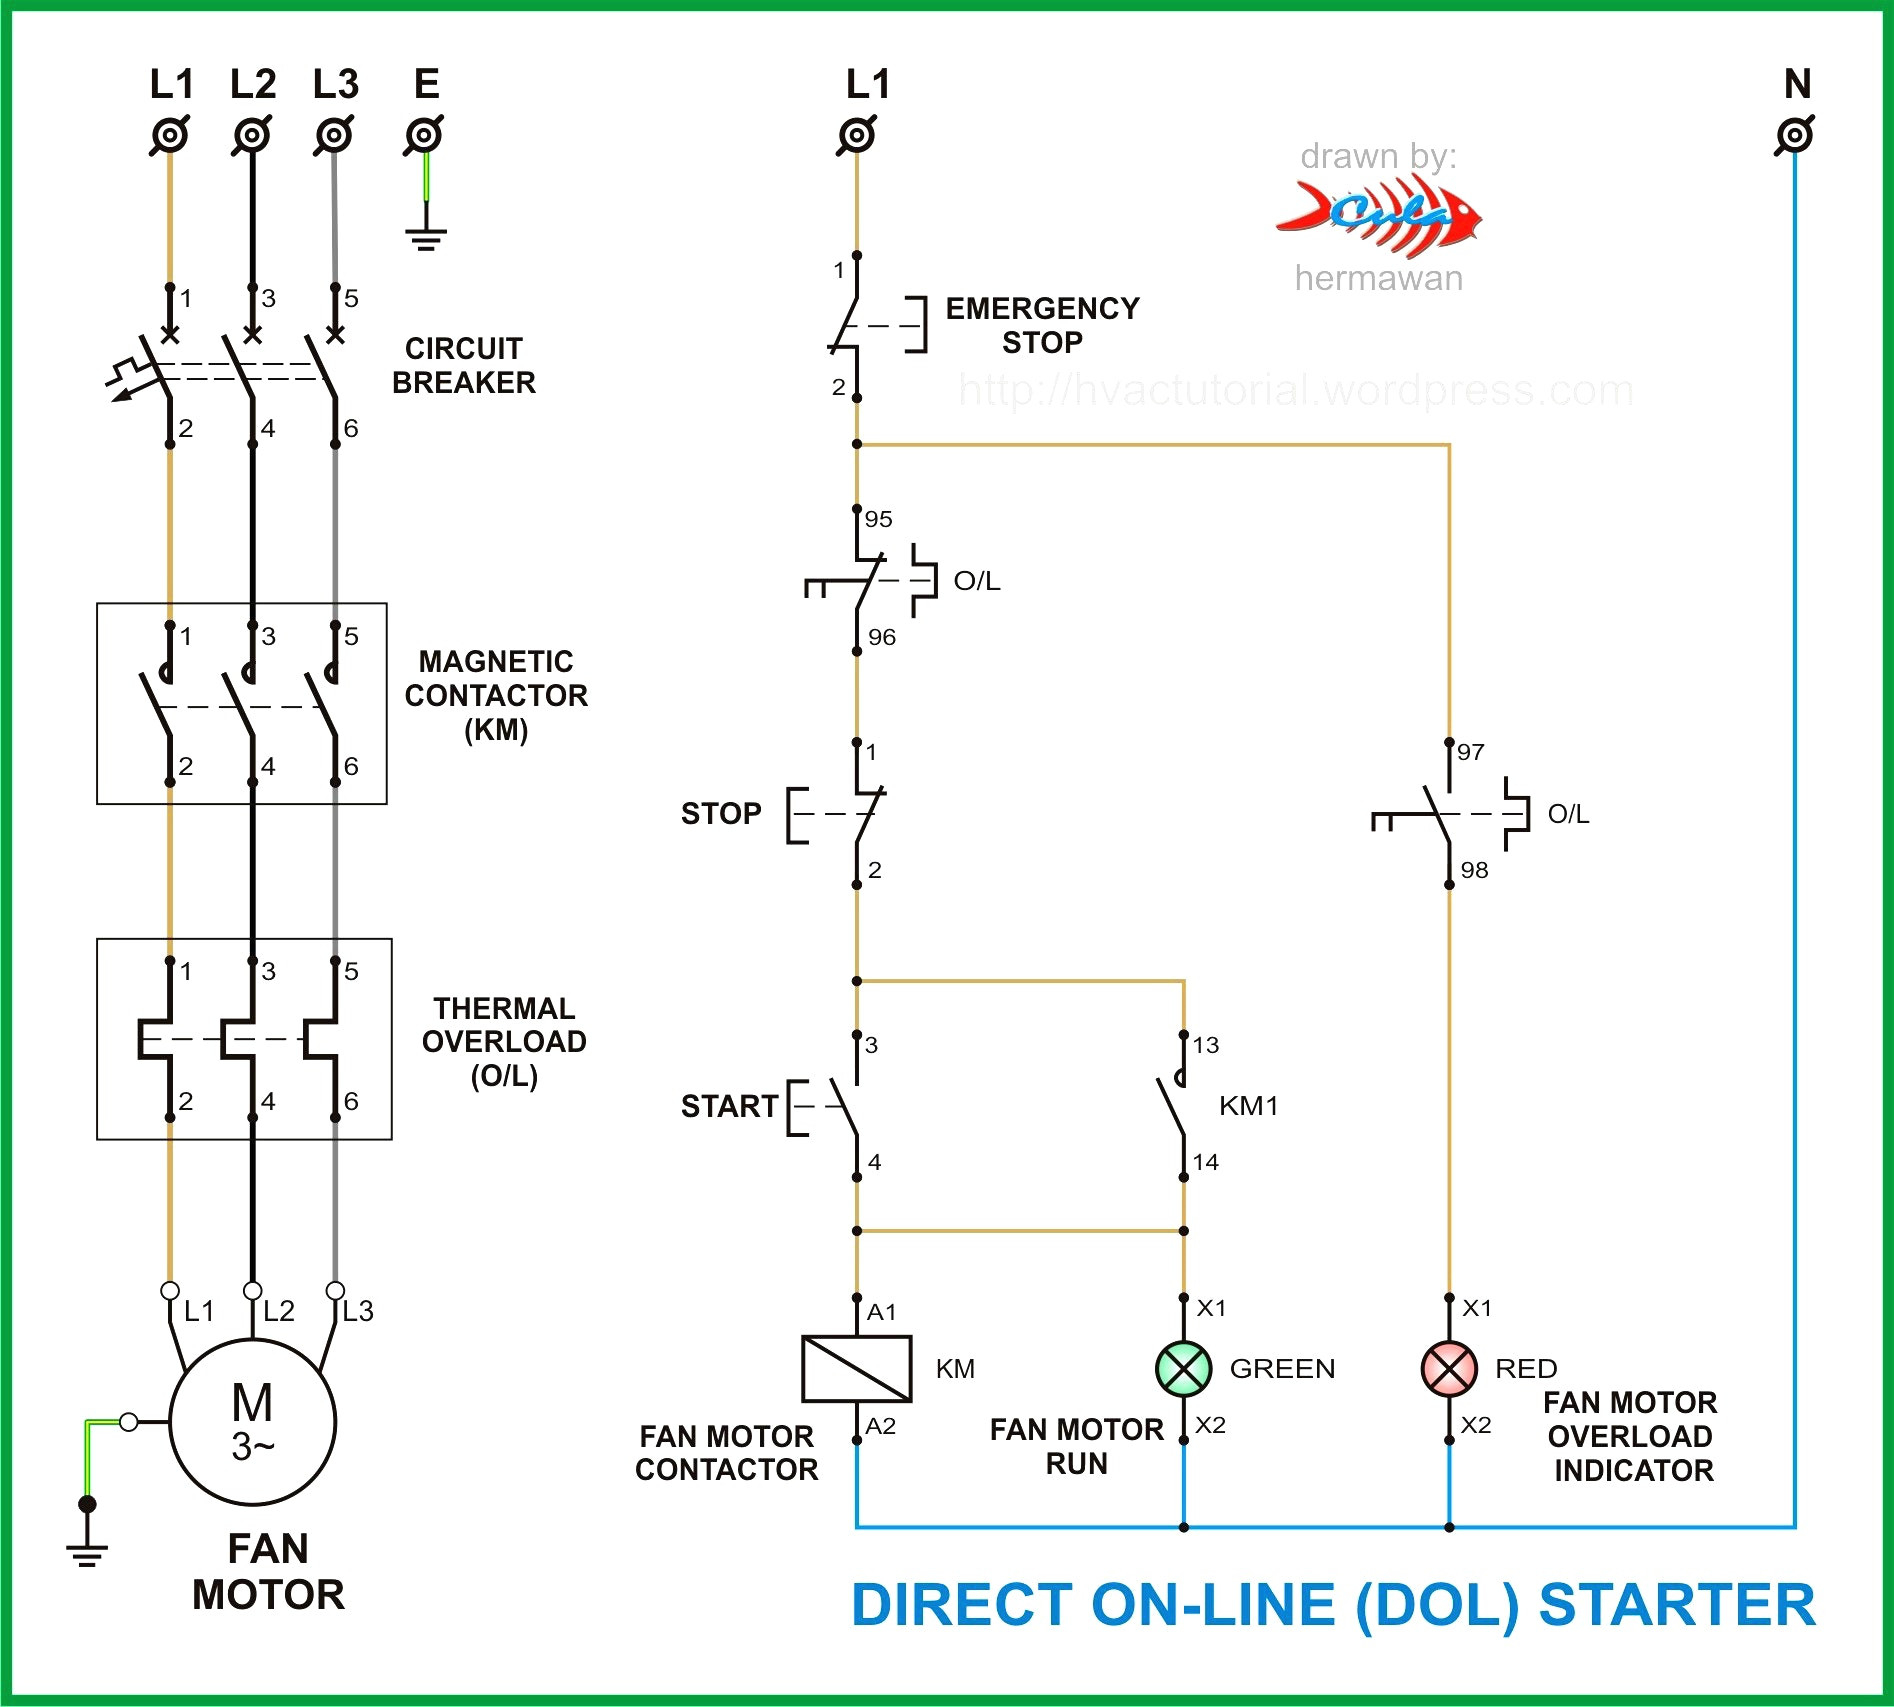 ge motor starter wiring diagram Collection-Breathtaking Ge Motor Starter Wiring Diagram Contemporary And Reversing For 8 18-r